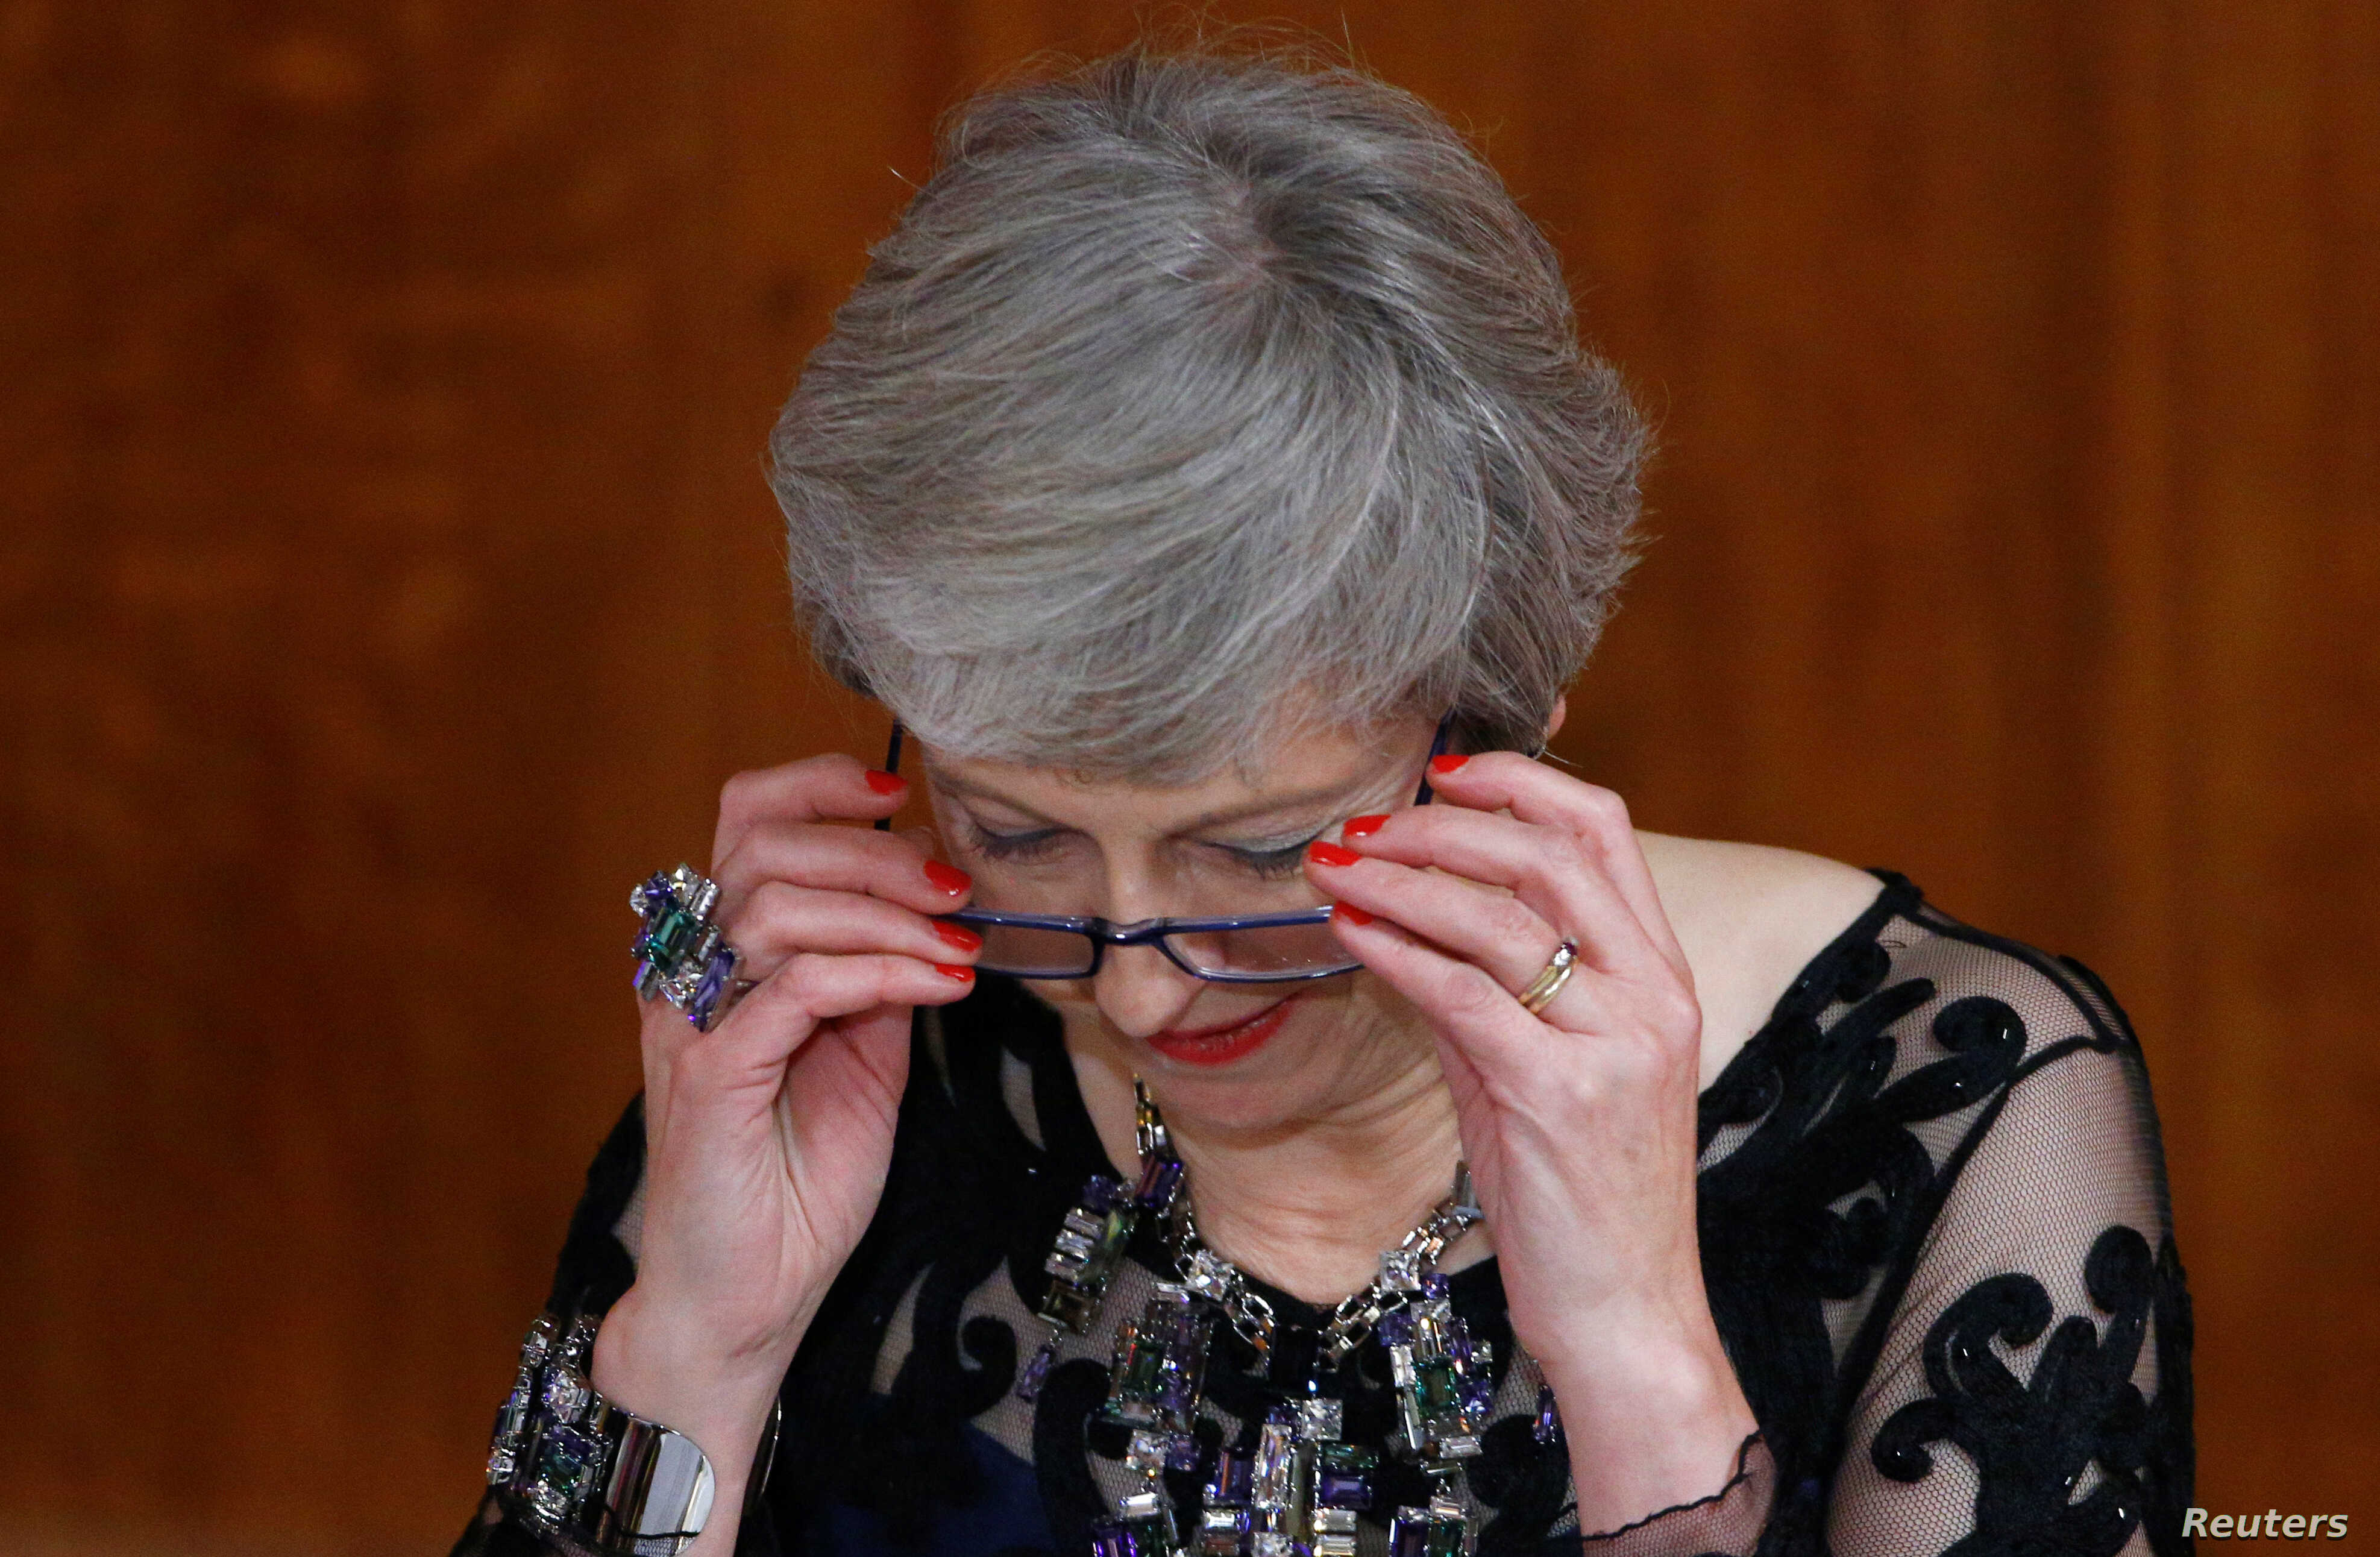 Britain's Prime Minister Theresa May delivers a speech during the annual Lord Mayor's Banquet at Guildhall in London, Britain, November 12, 2018.